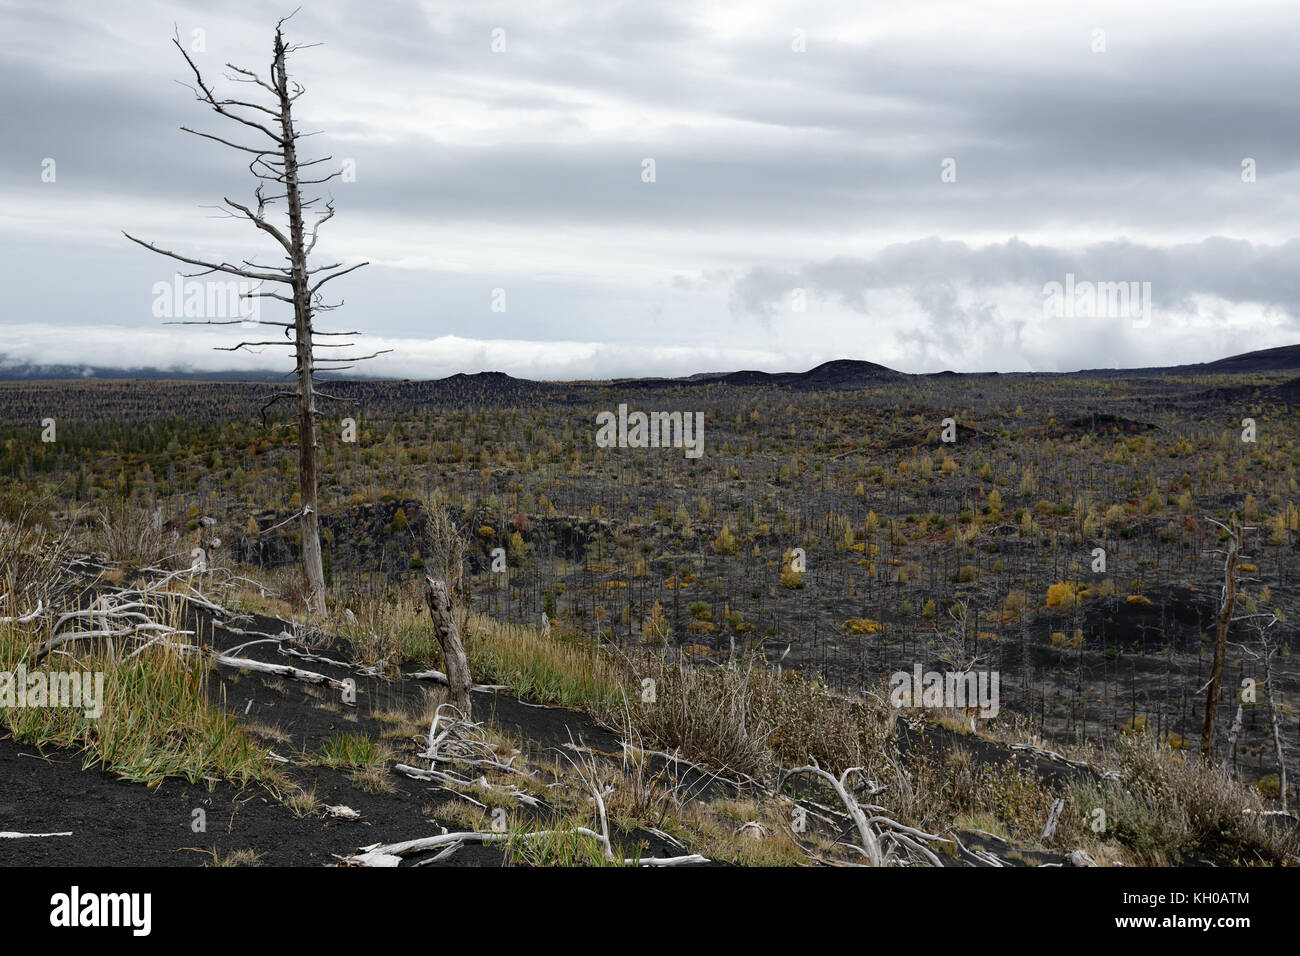 Volcano landscape: Dead Forest (Dead Wood) on Kamchatka Peninsula - consequence of natural disaster - catastrophic - Stock Image